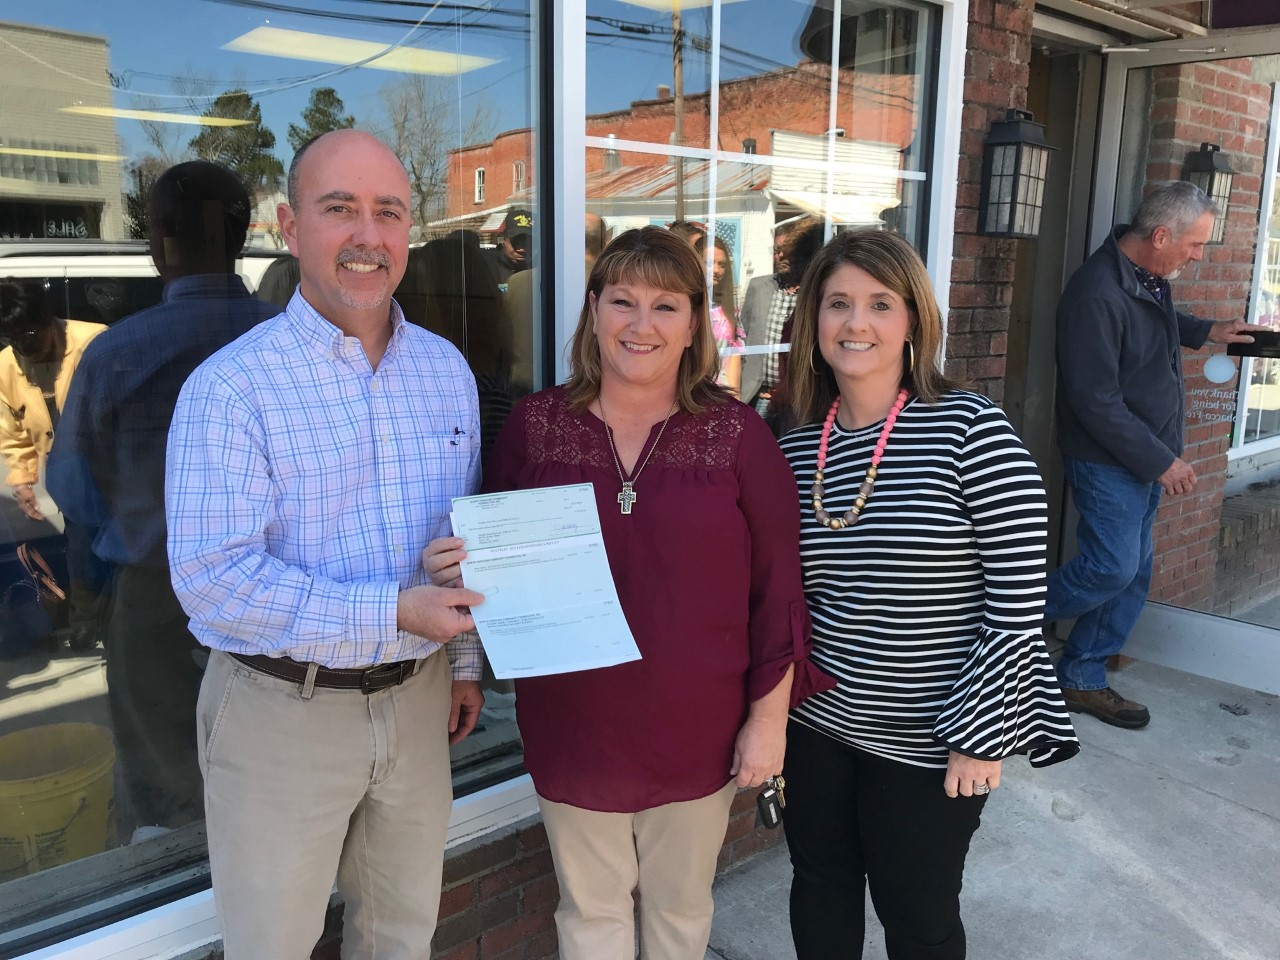 Pictured is the $10,000 grant being awarded to Jones County RISE. Left to right are: Charley Jones, Joy Wynne and Taffy Jones.